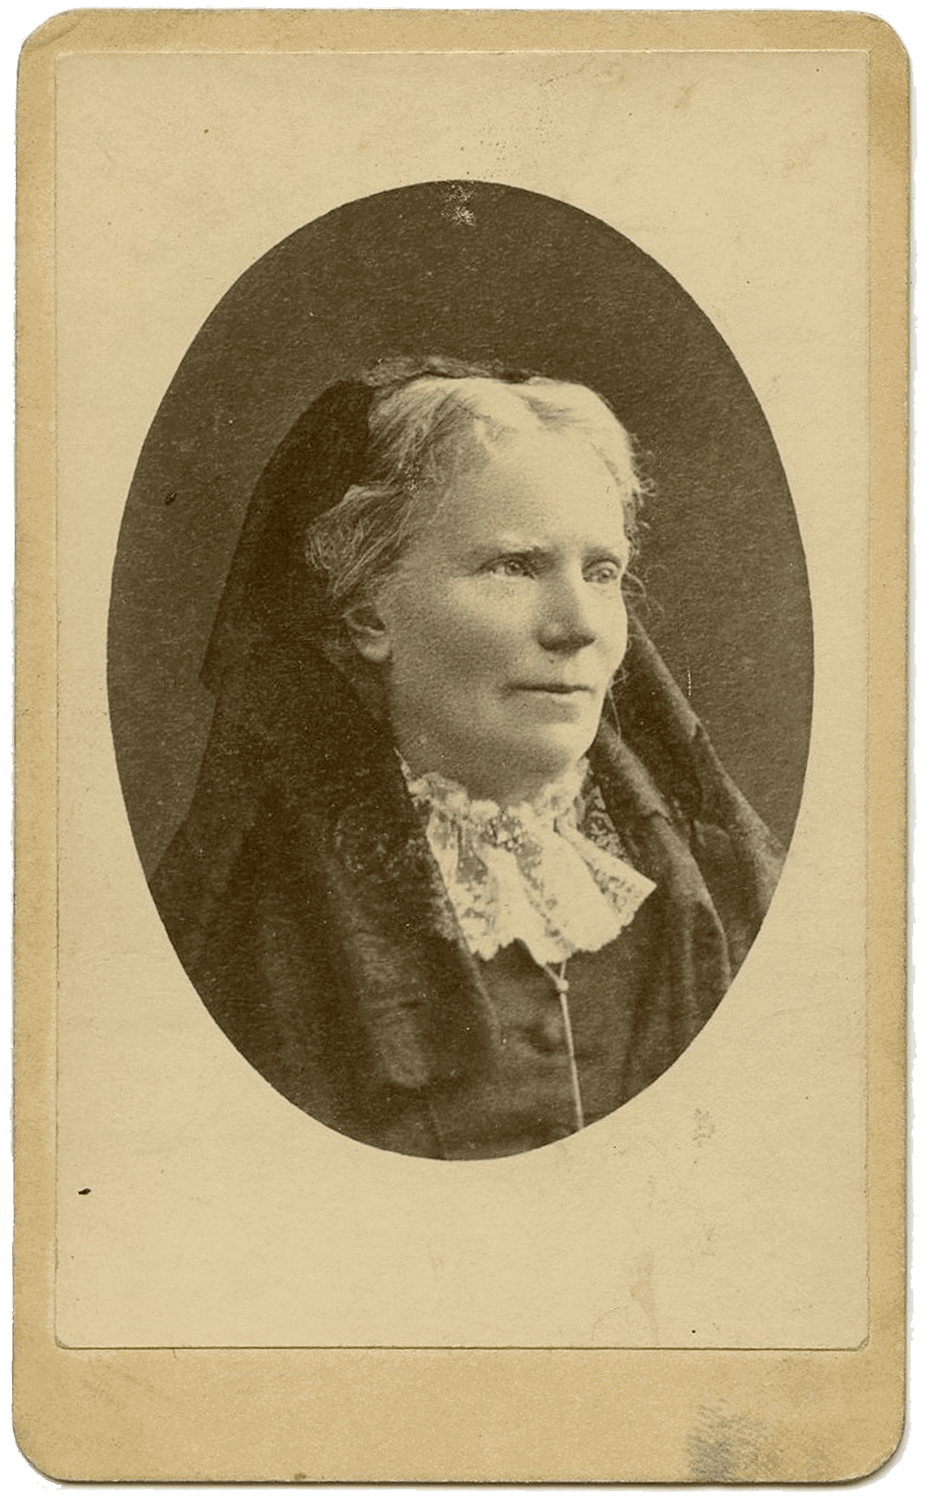 Dr. Emily Blackwell (1826-1910), Physician (Photo: Sarony Studio, NY)